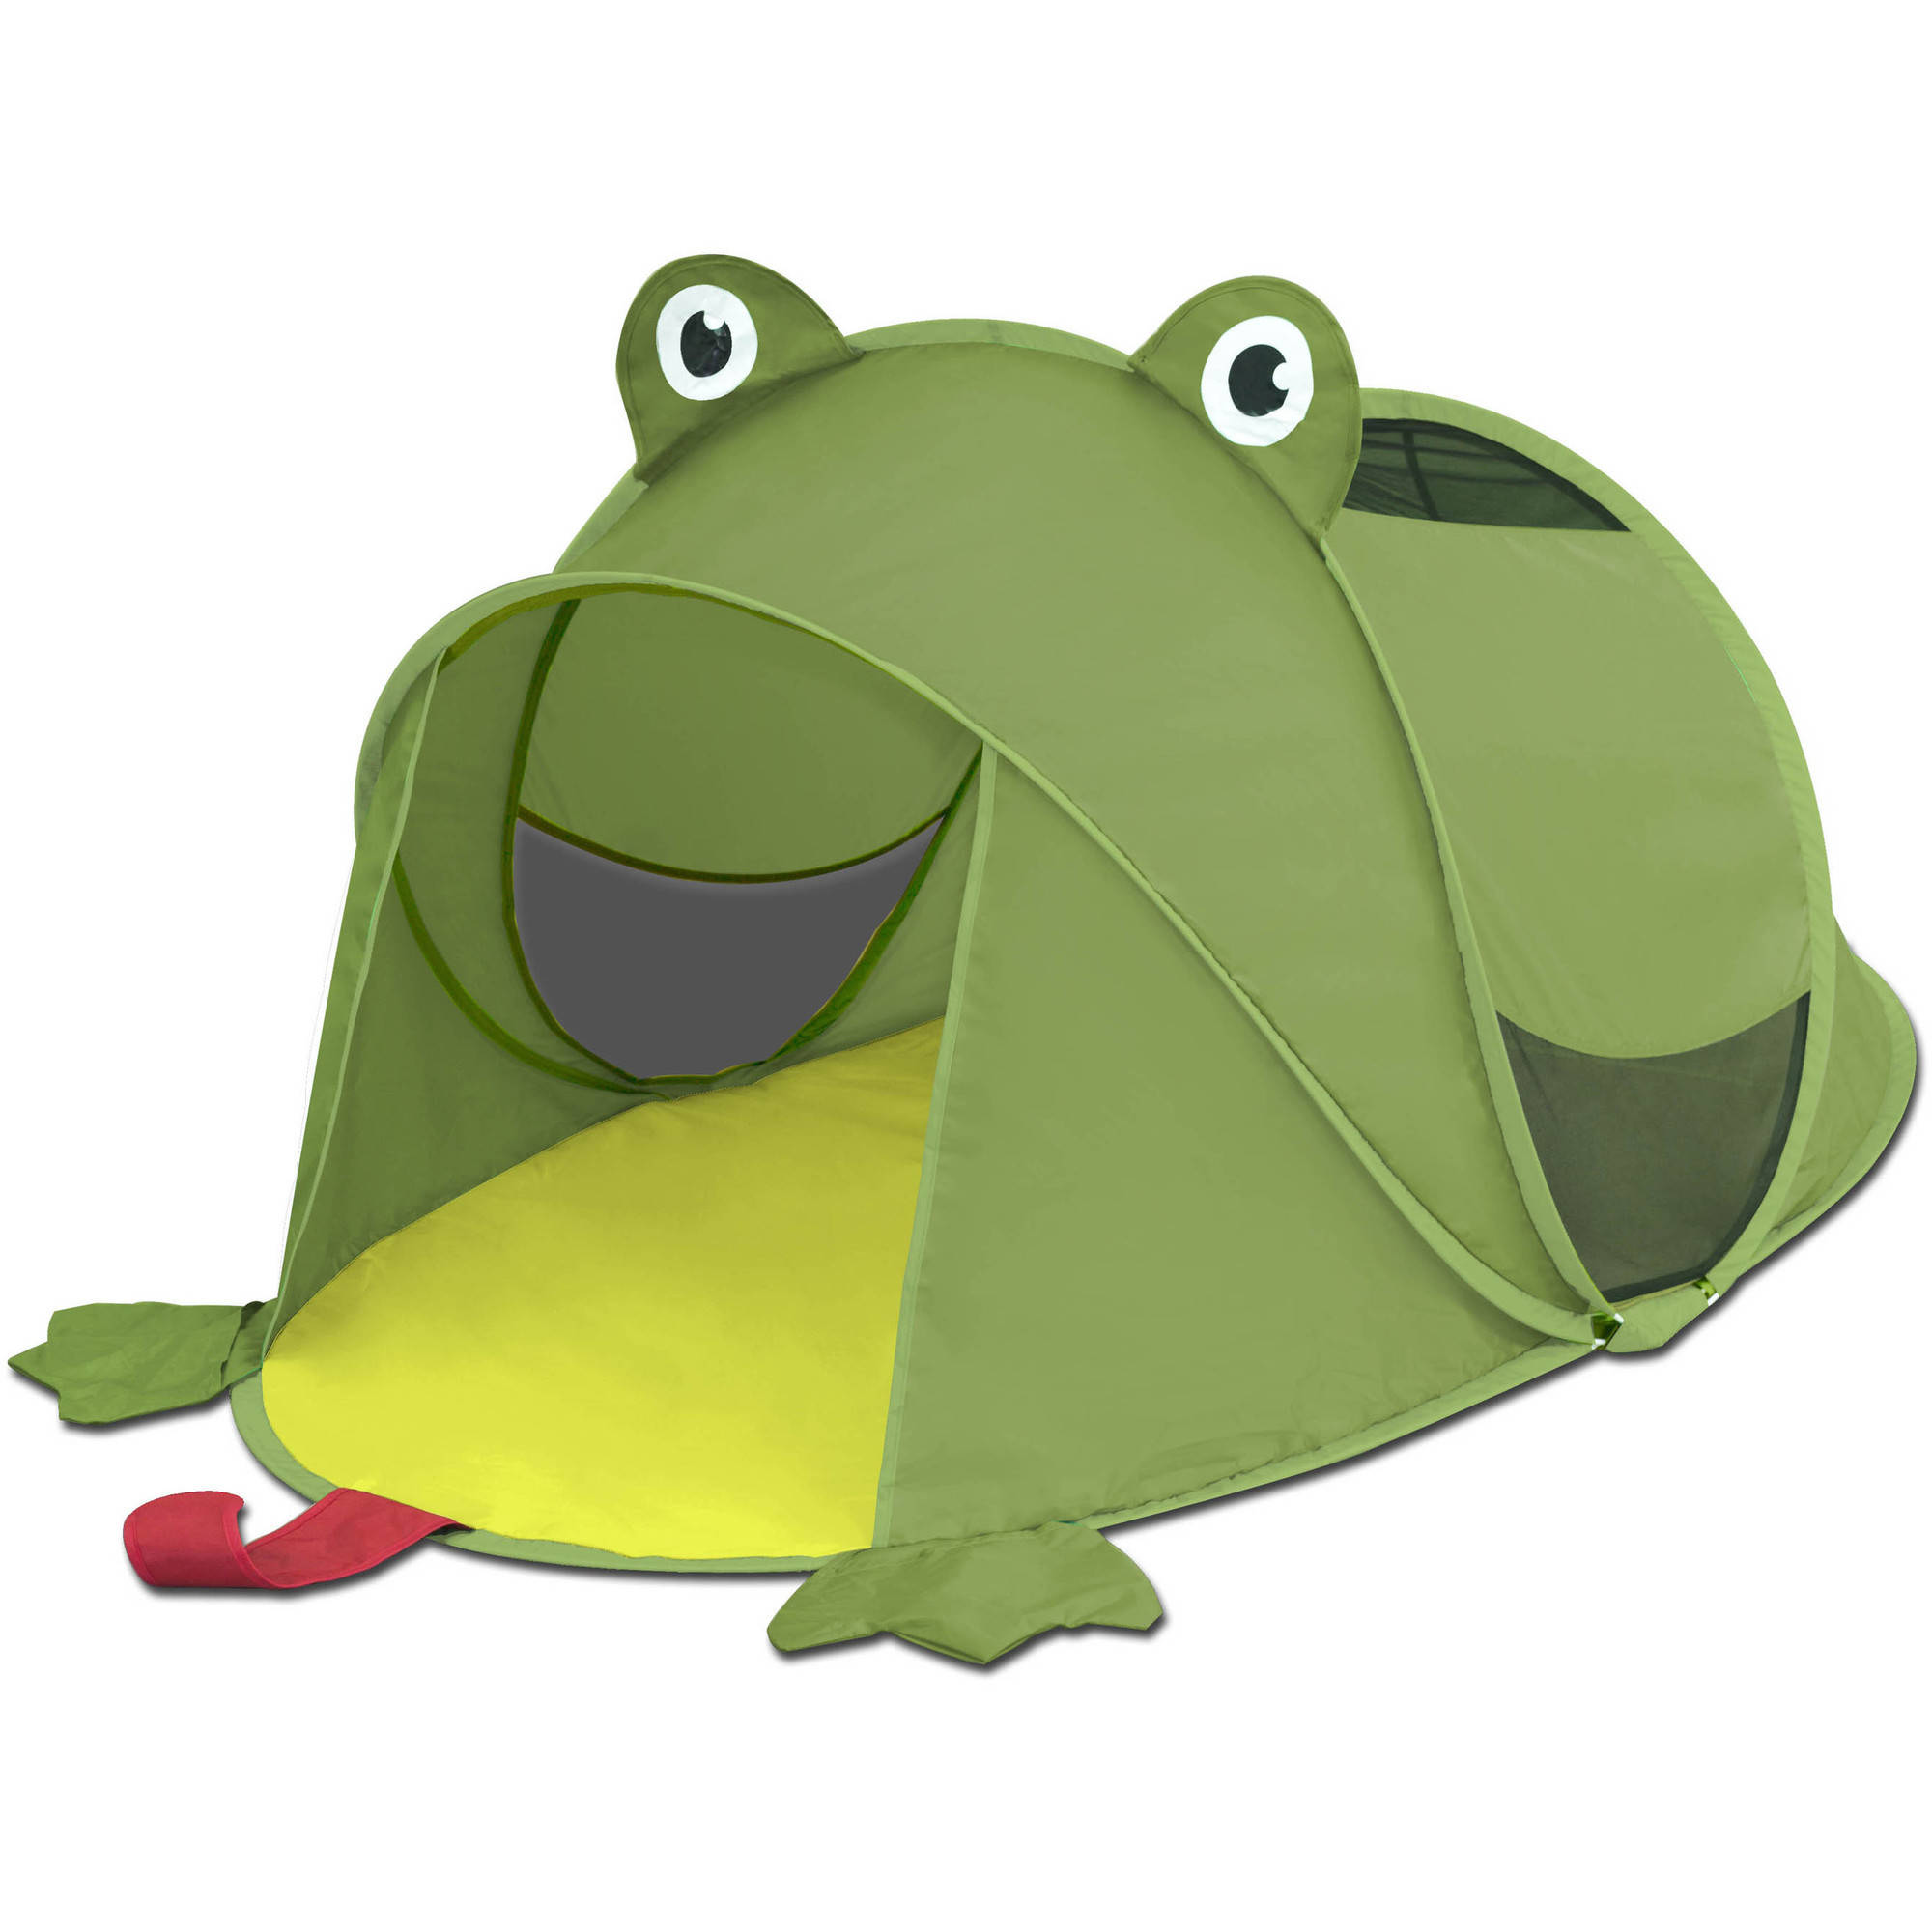 Kids Pop-Up Tent Frog  sc 1 st  Walmart & Kids Pop-Up Tent Frog - Walmart.com